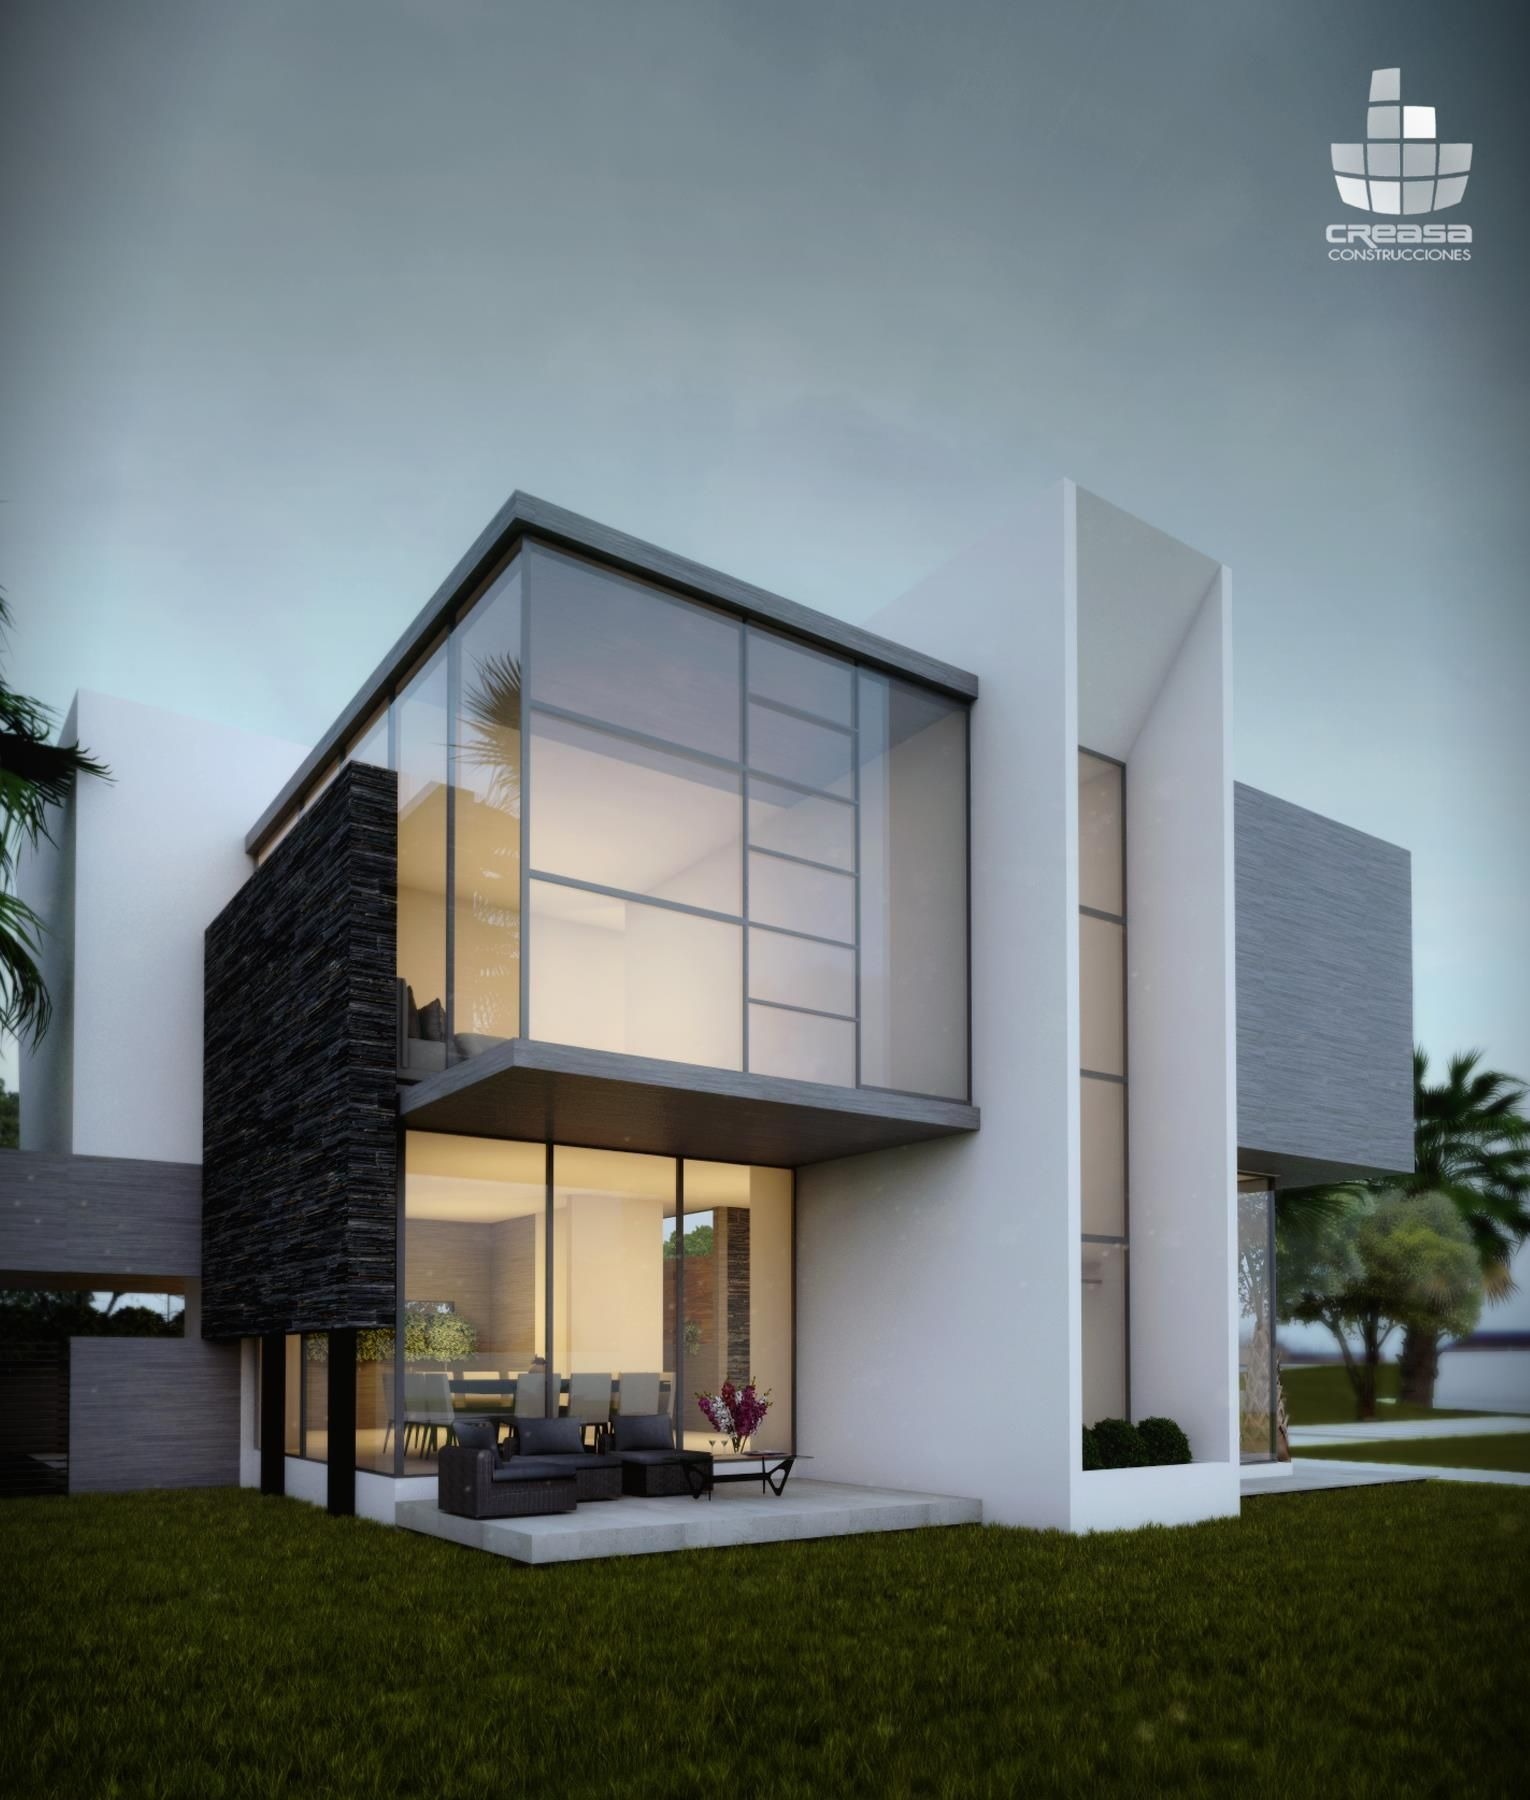 Creasa modern architecture pinterest villas house for Contemporary residential architecture